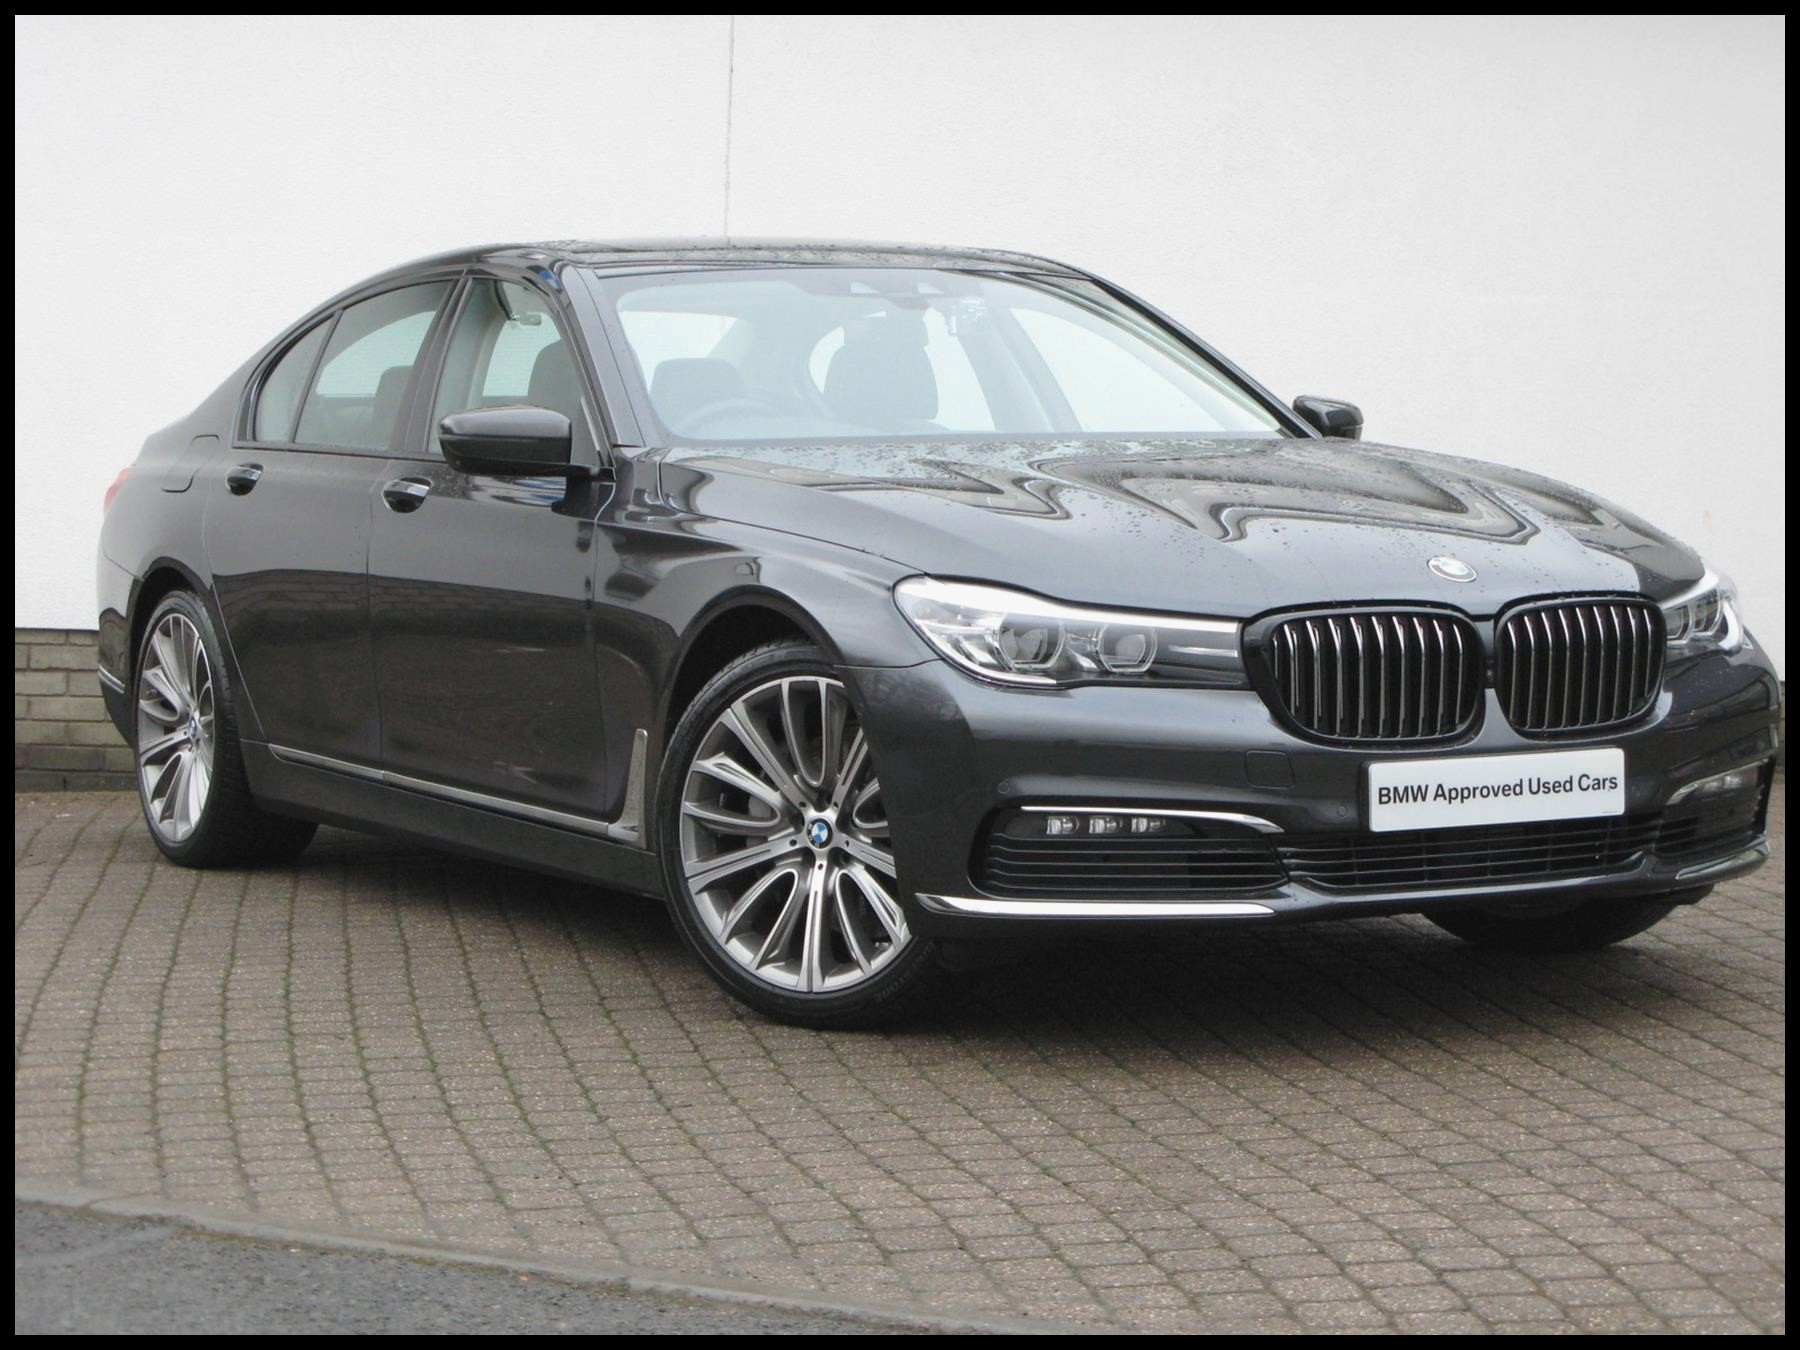 Awesome Used 2017 Bmw 7 Series G11 740d Xdrive Saloon B57 3 0d for